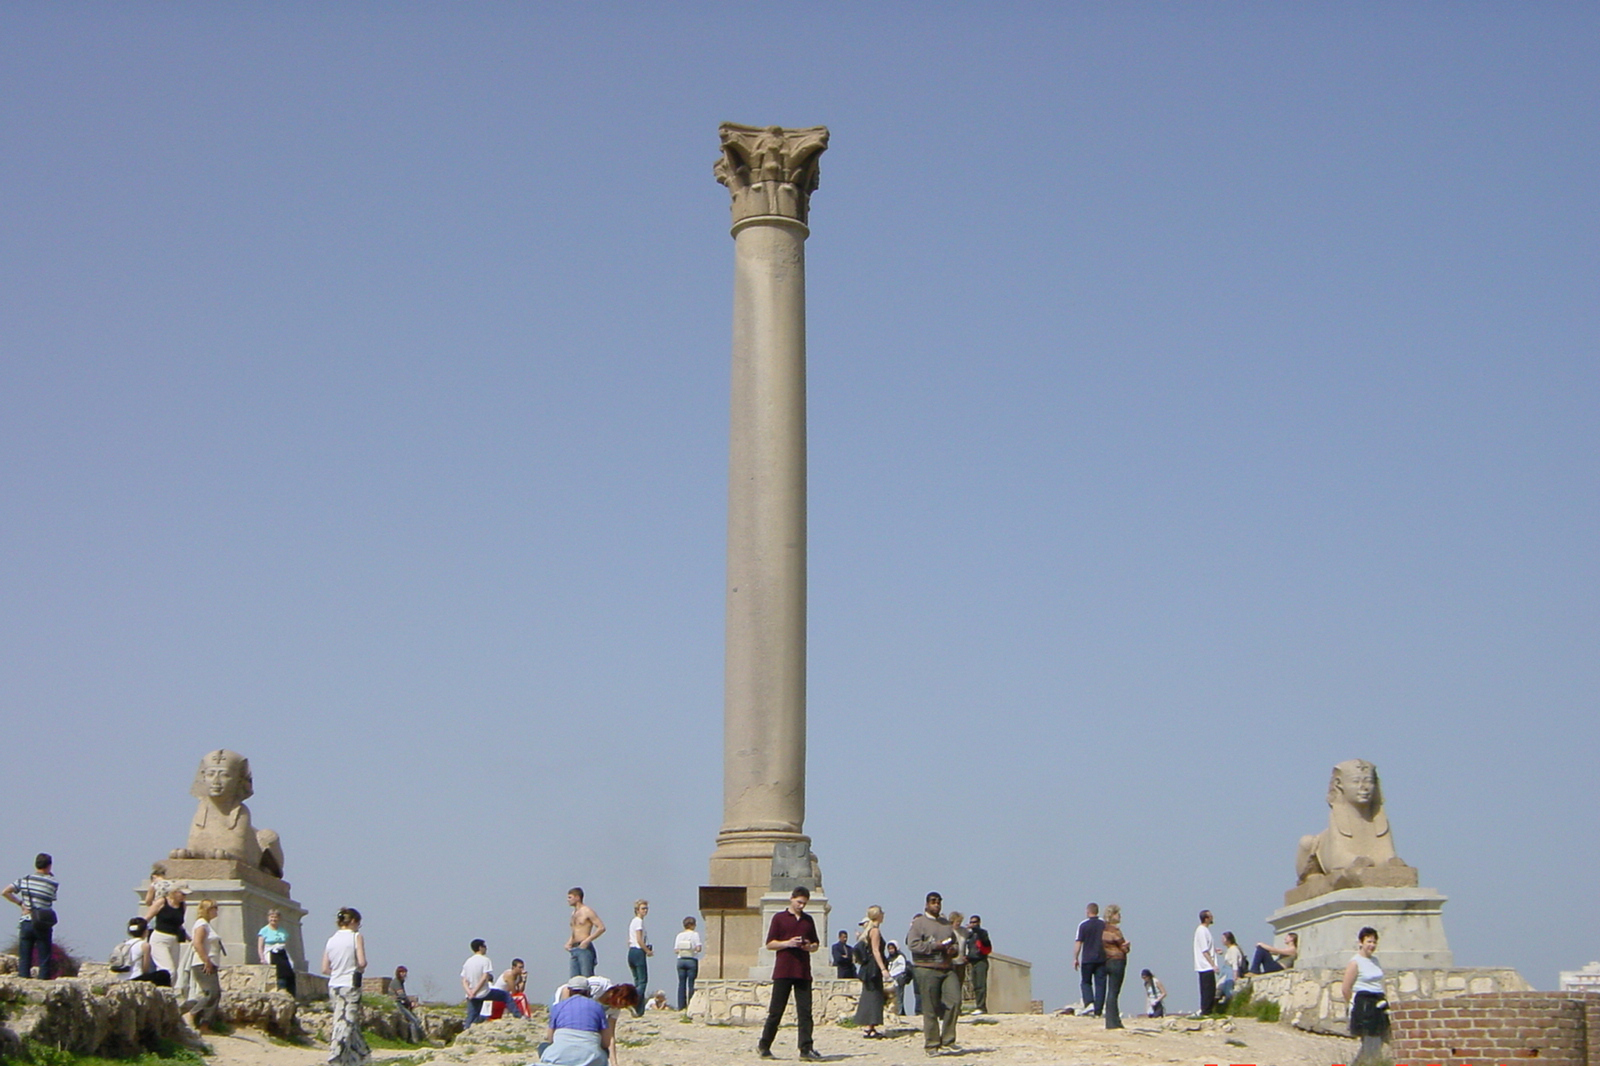 Pompey pillar in Alexandria